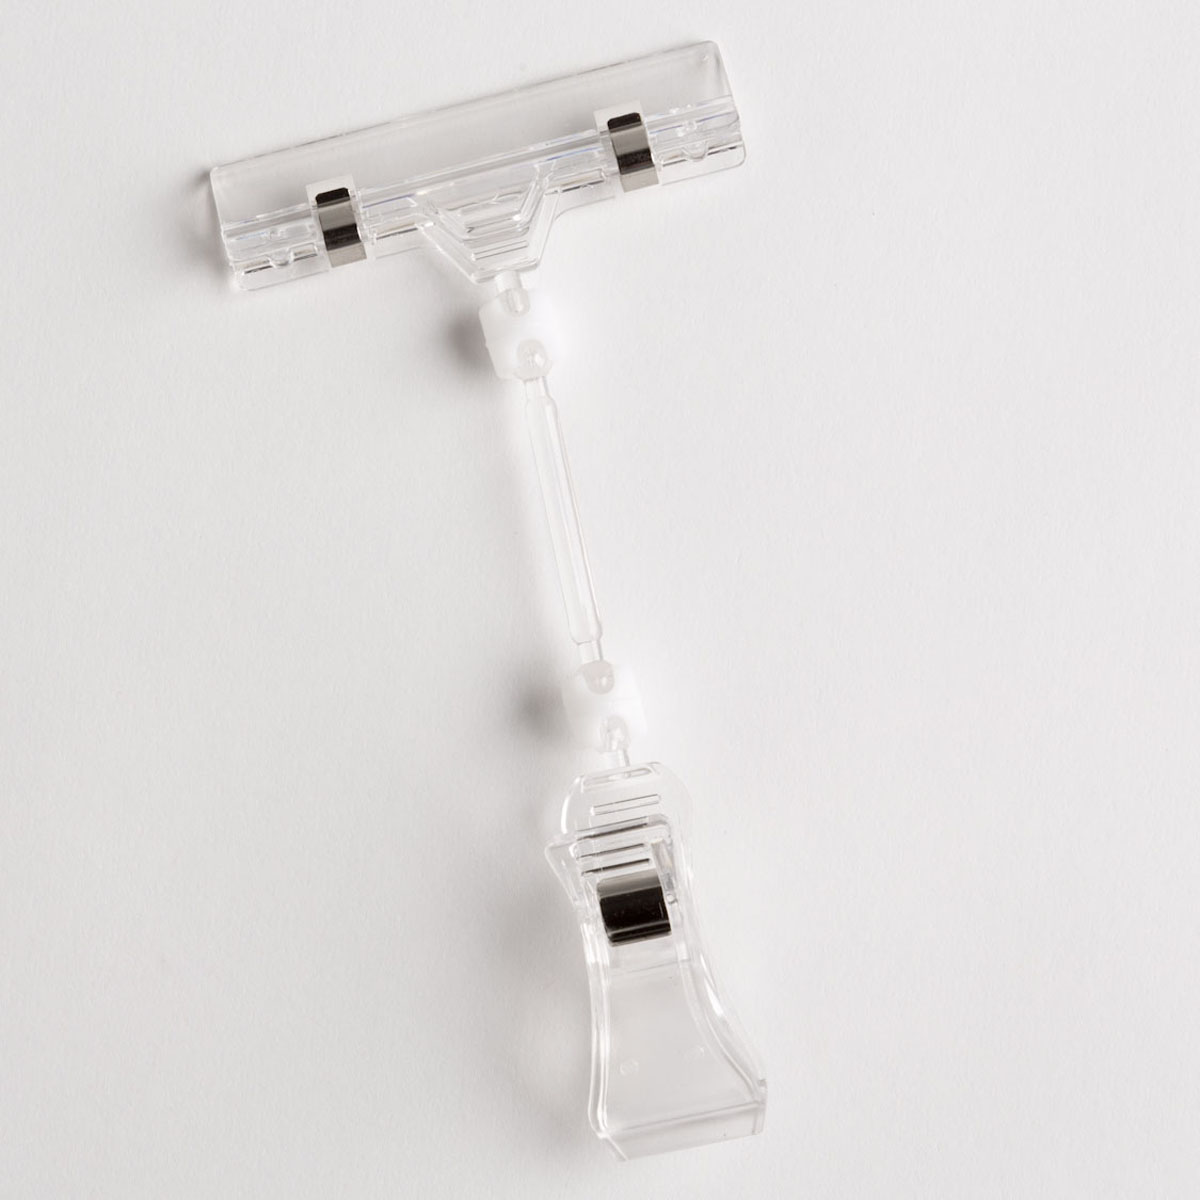 SIGN CLIP-CLEAR PLASTIC